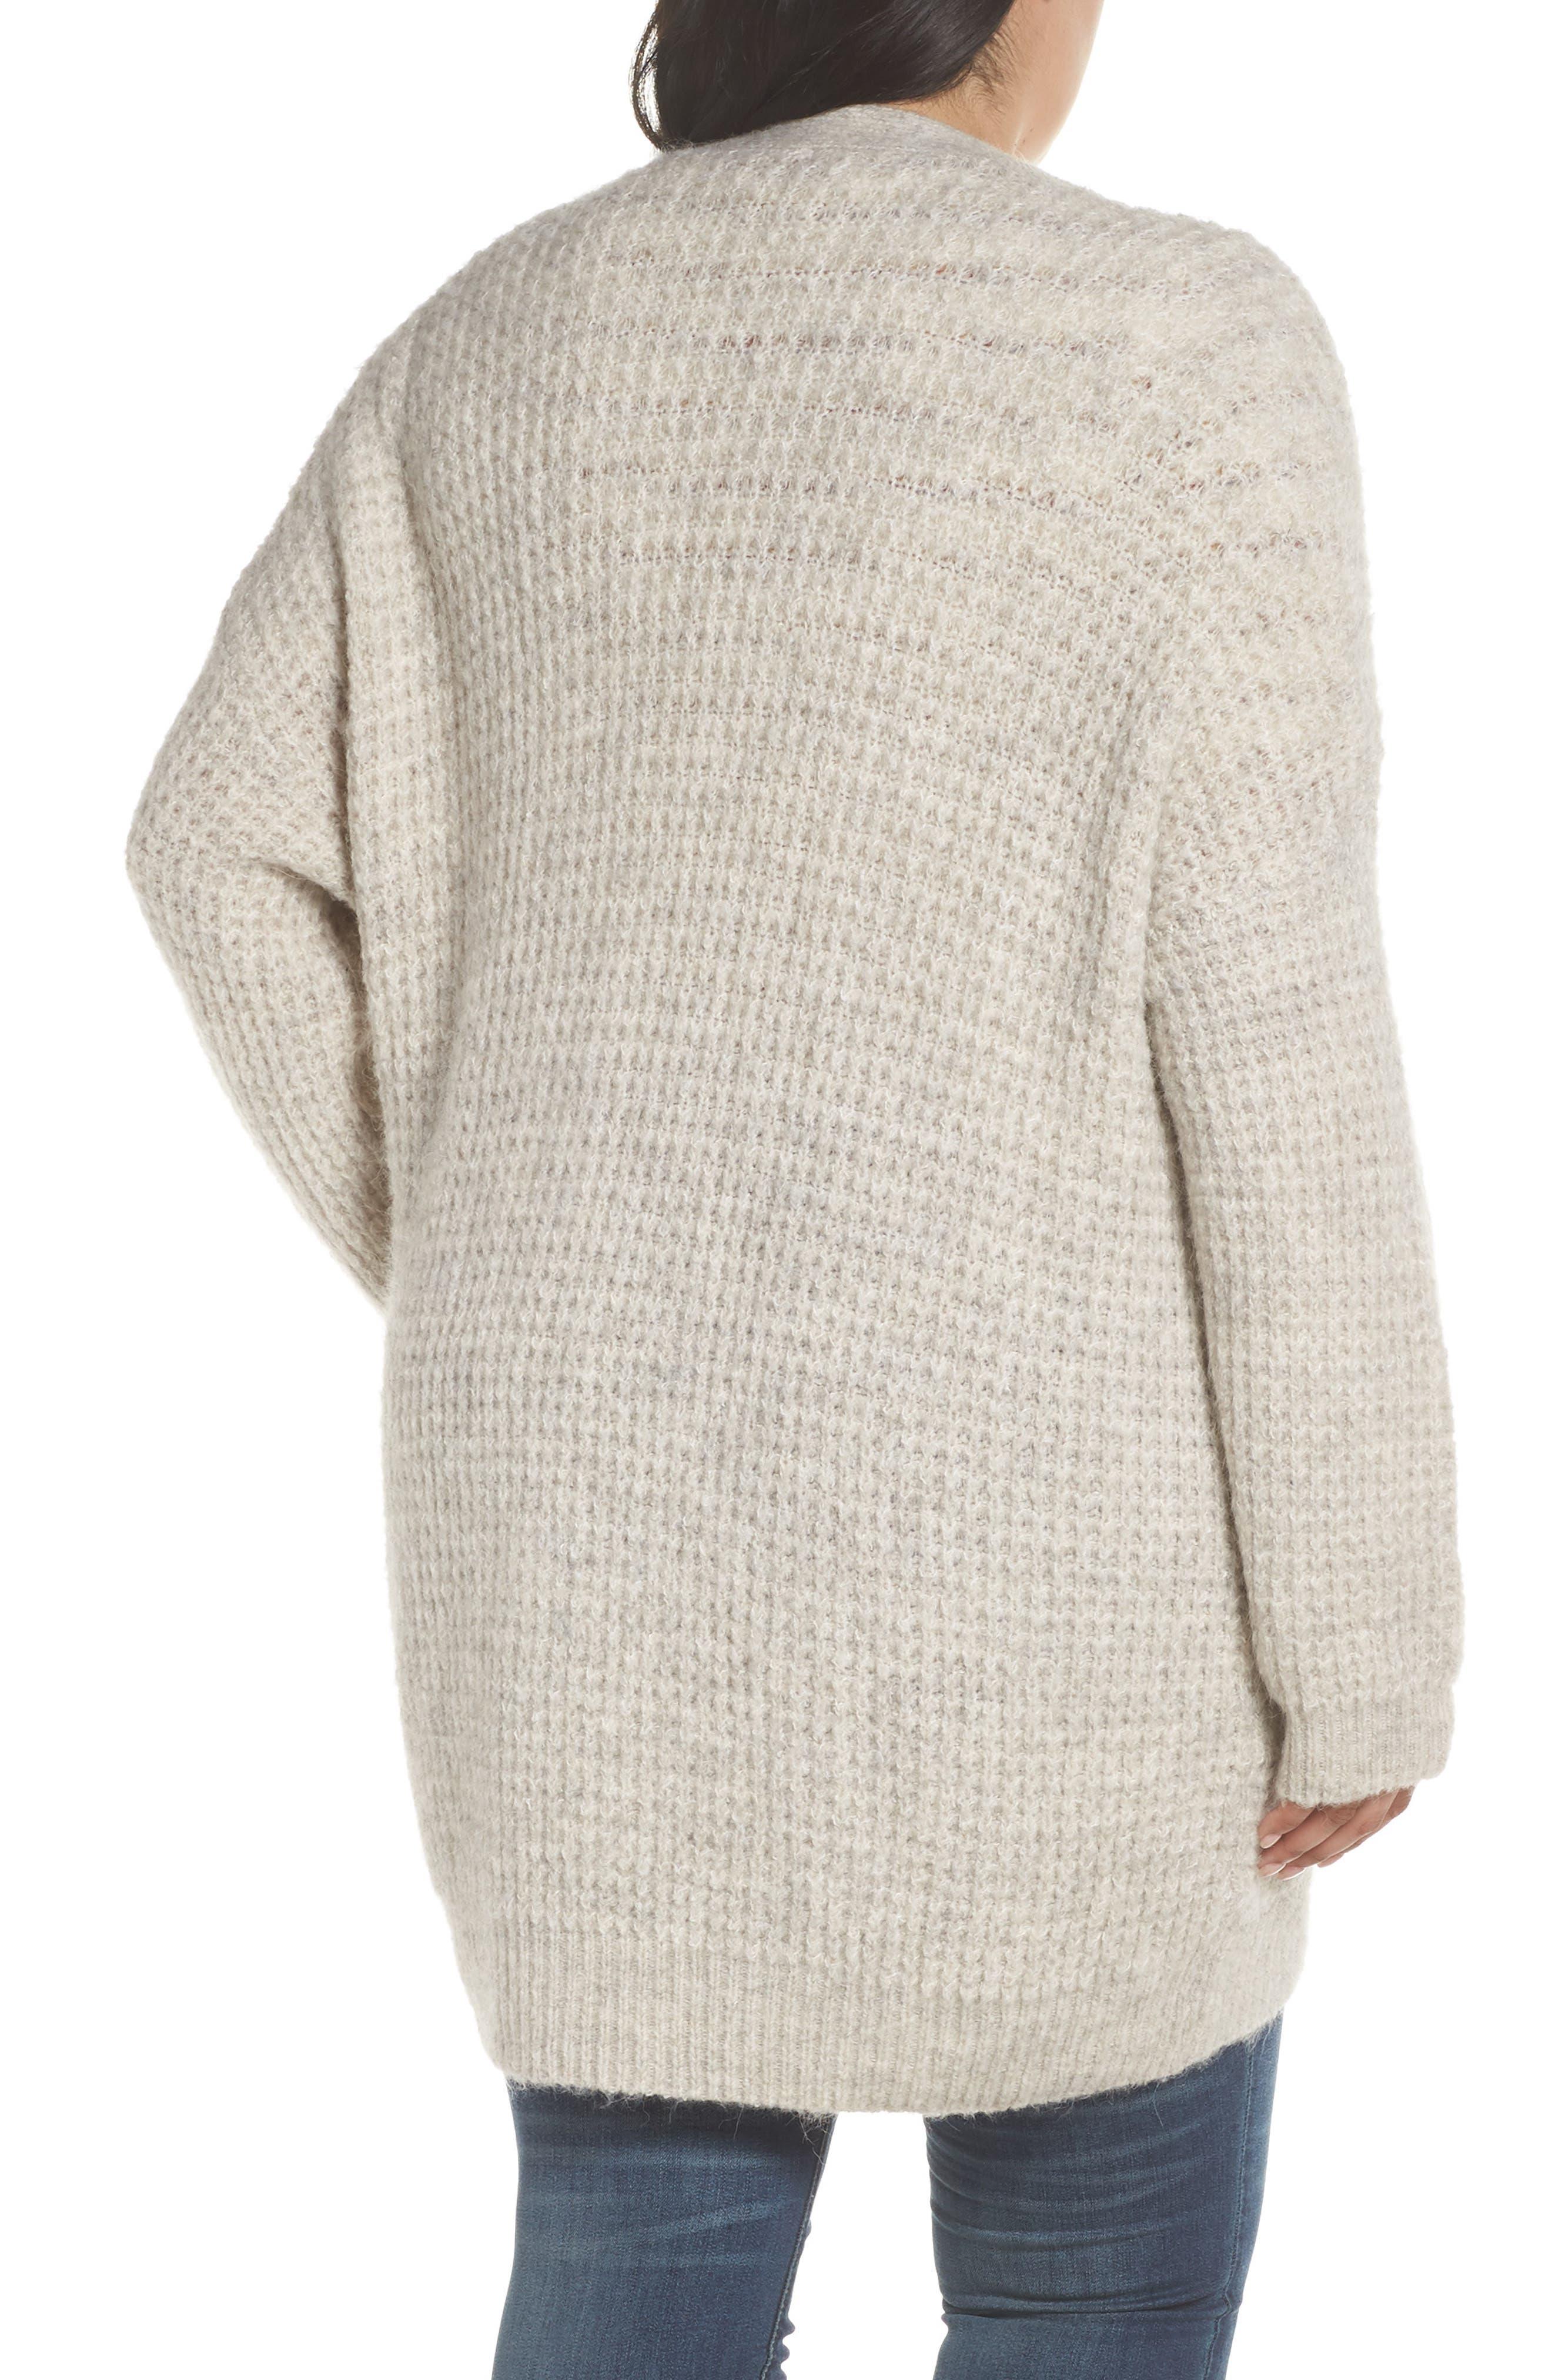 Oversized Waffle Stitch Cardigan,                             Alternate thumbnail 3, color,                             BEIGE BIRCH